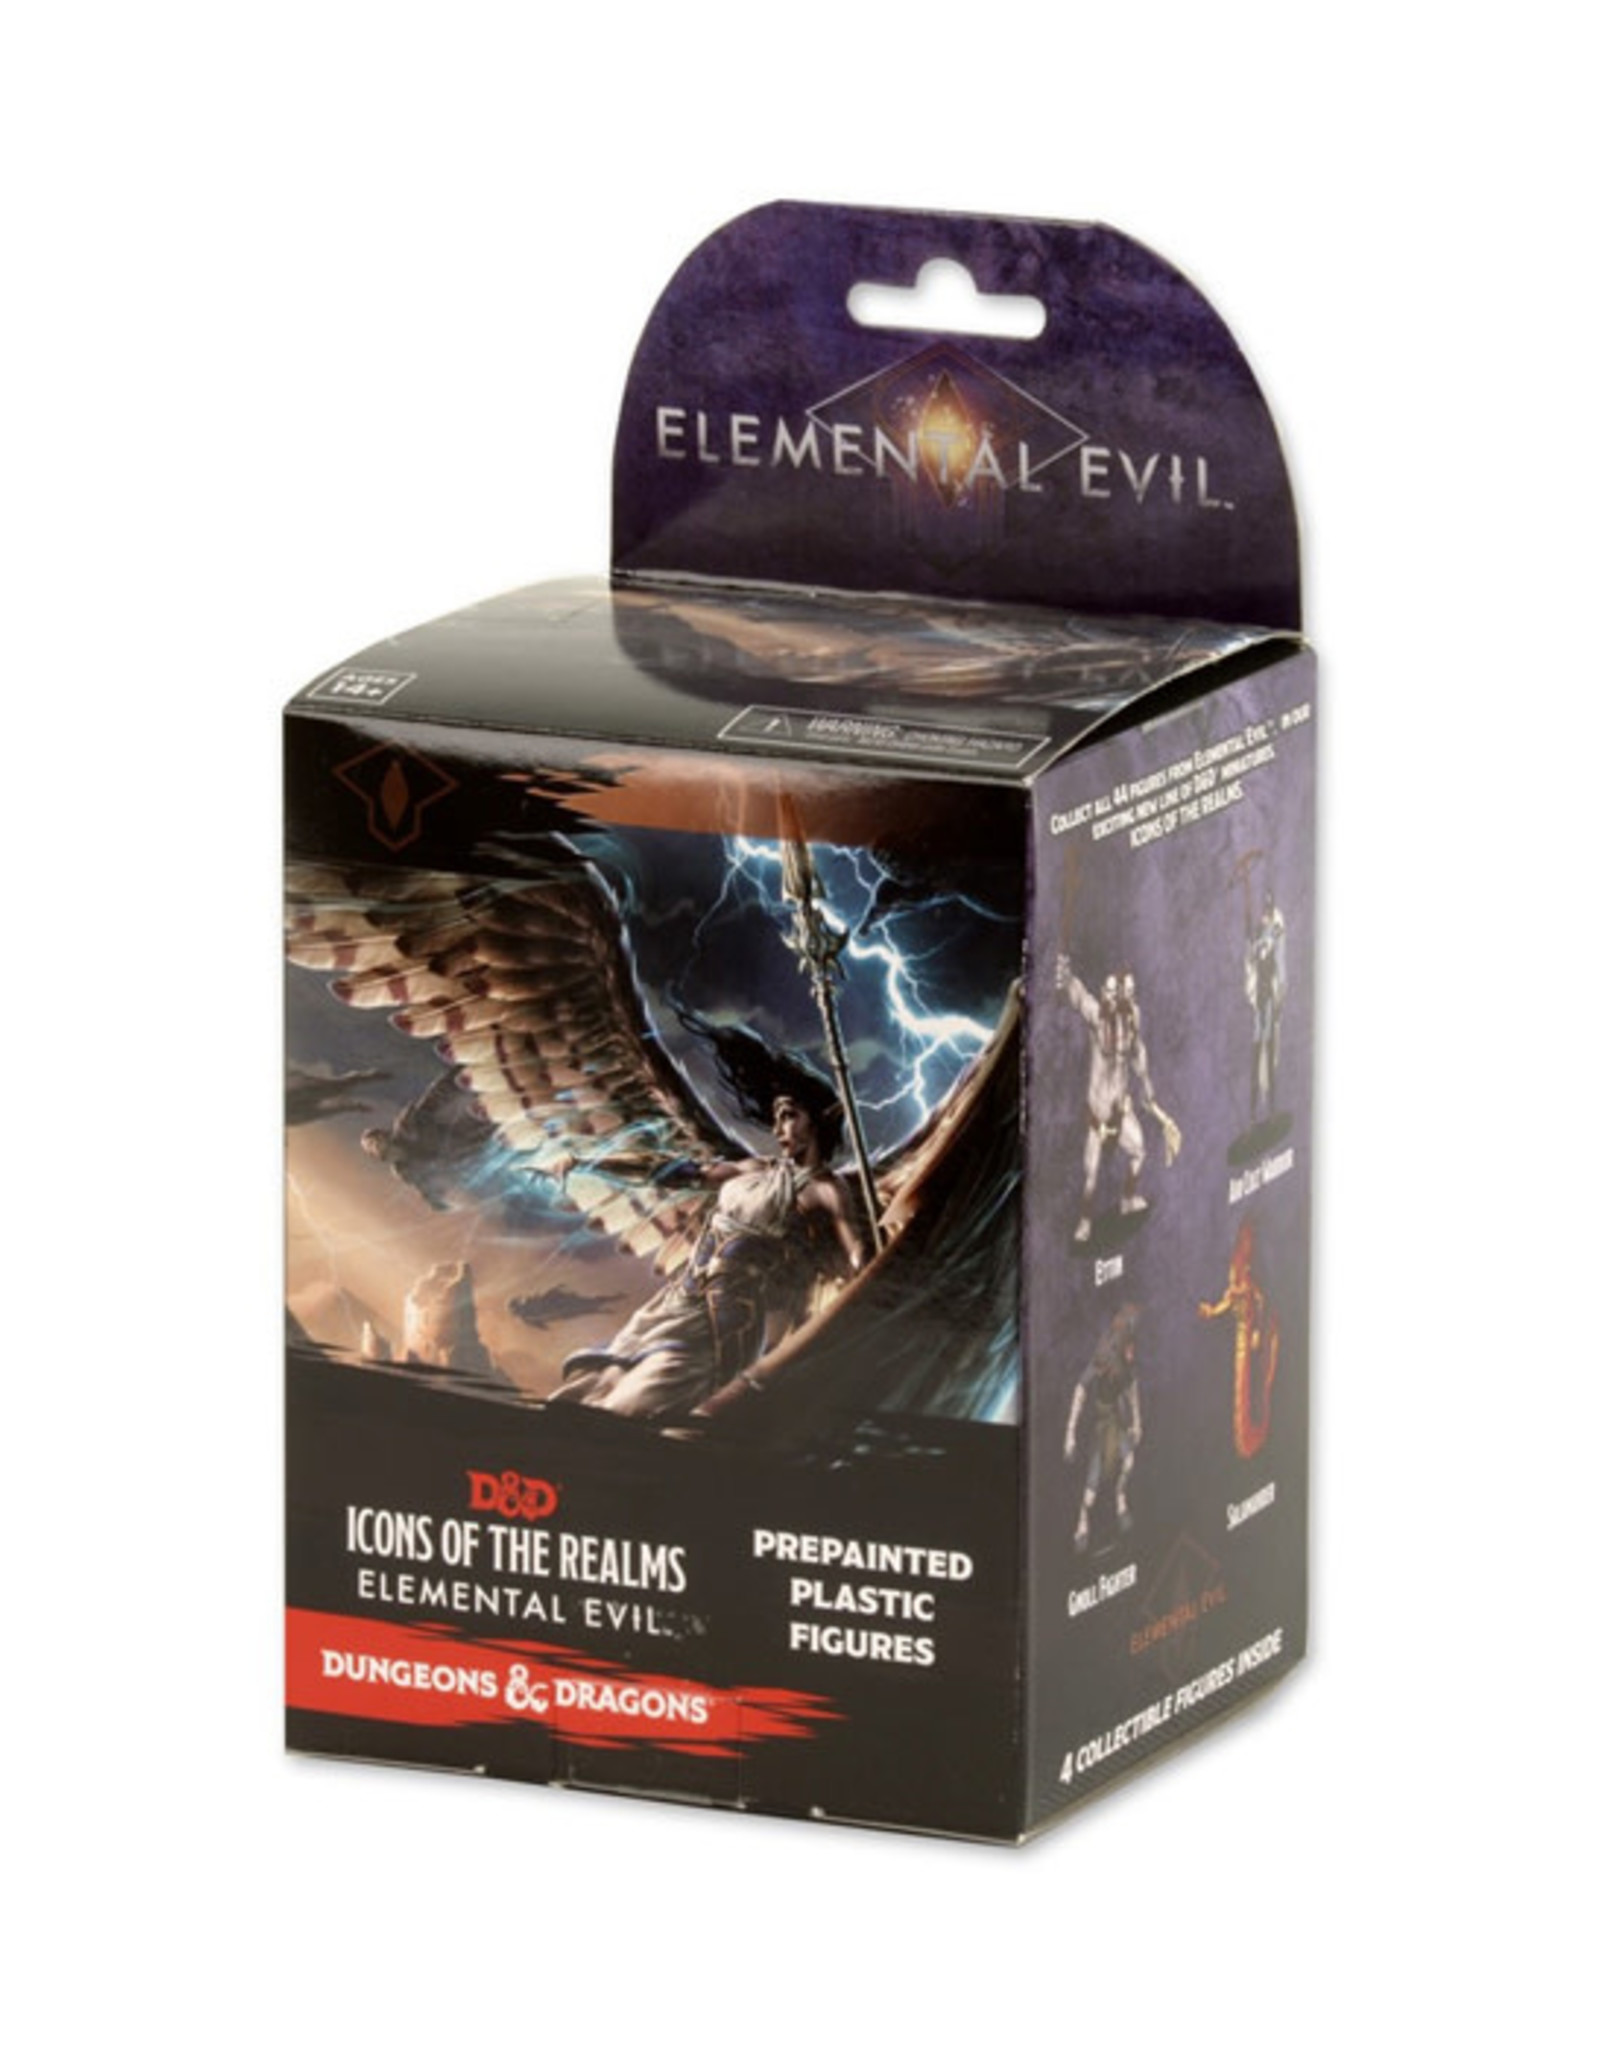 Dungeons & Dragons Dungeons & Dragons: Icons of the Realms - Elemental Evil - Booster Pack